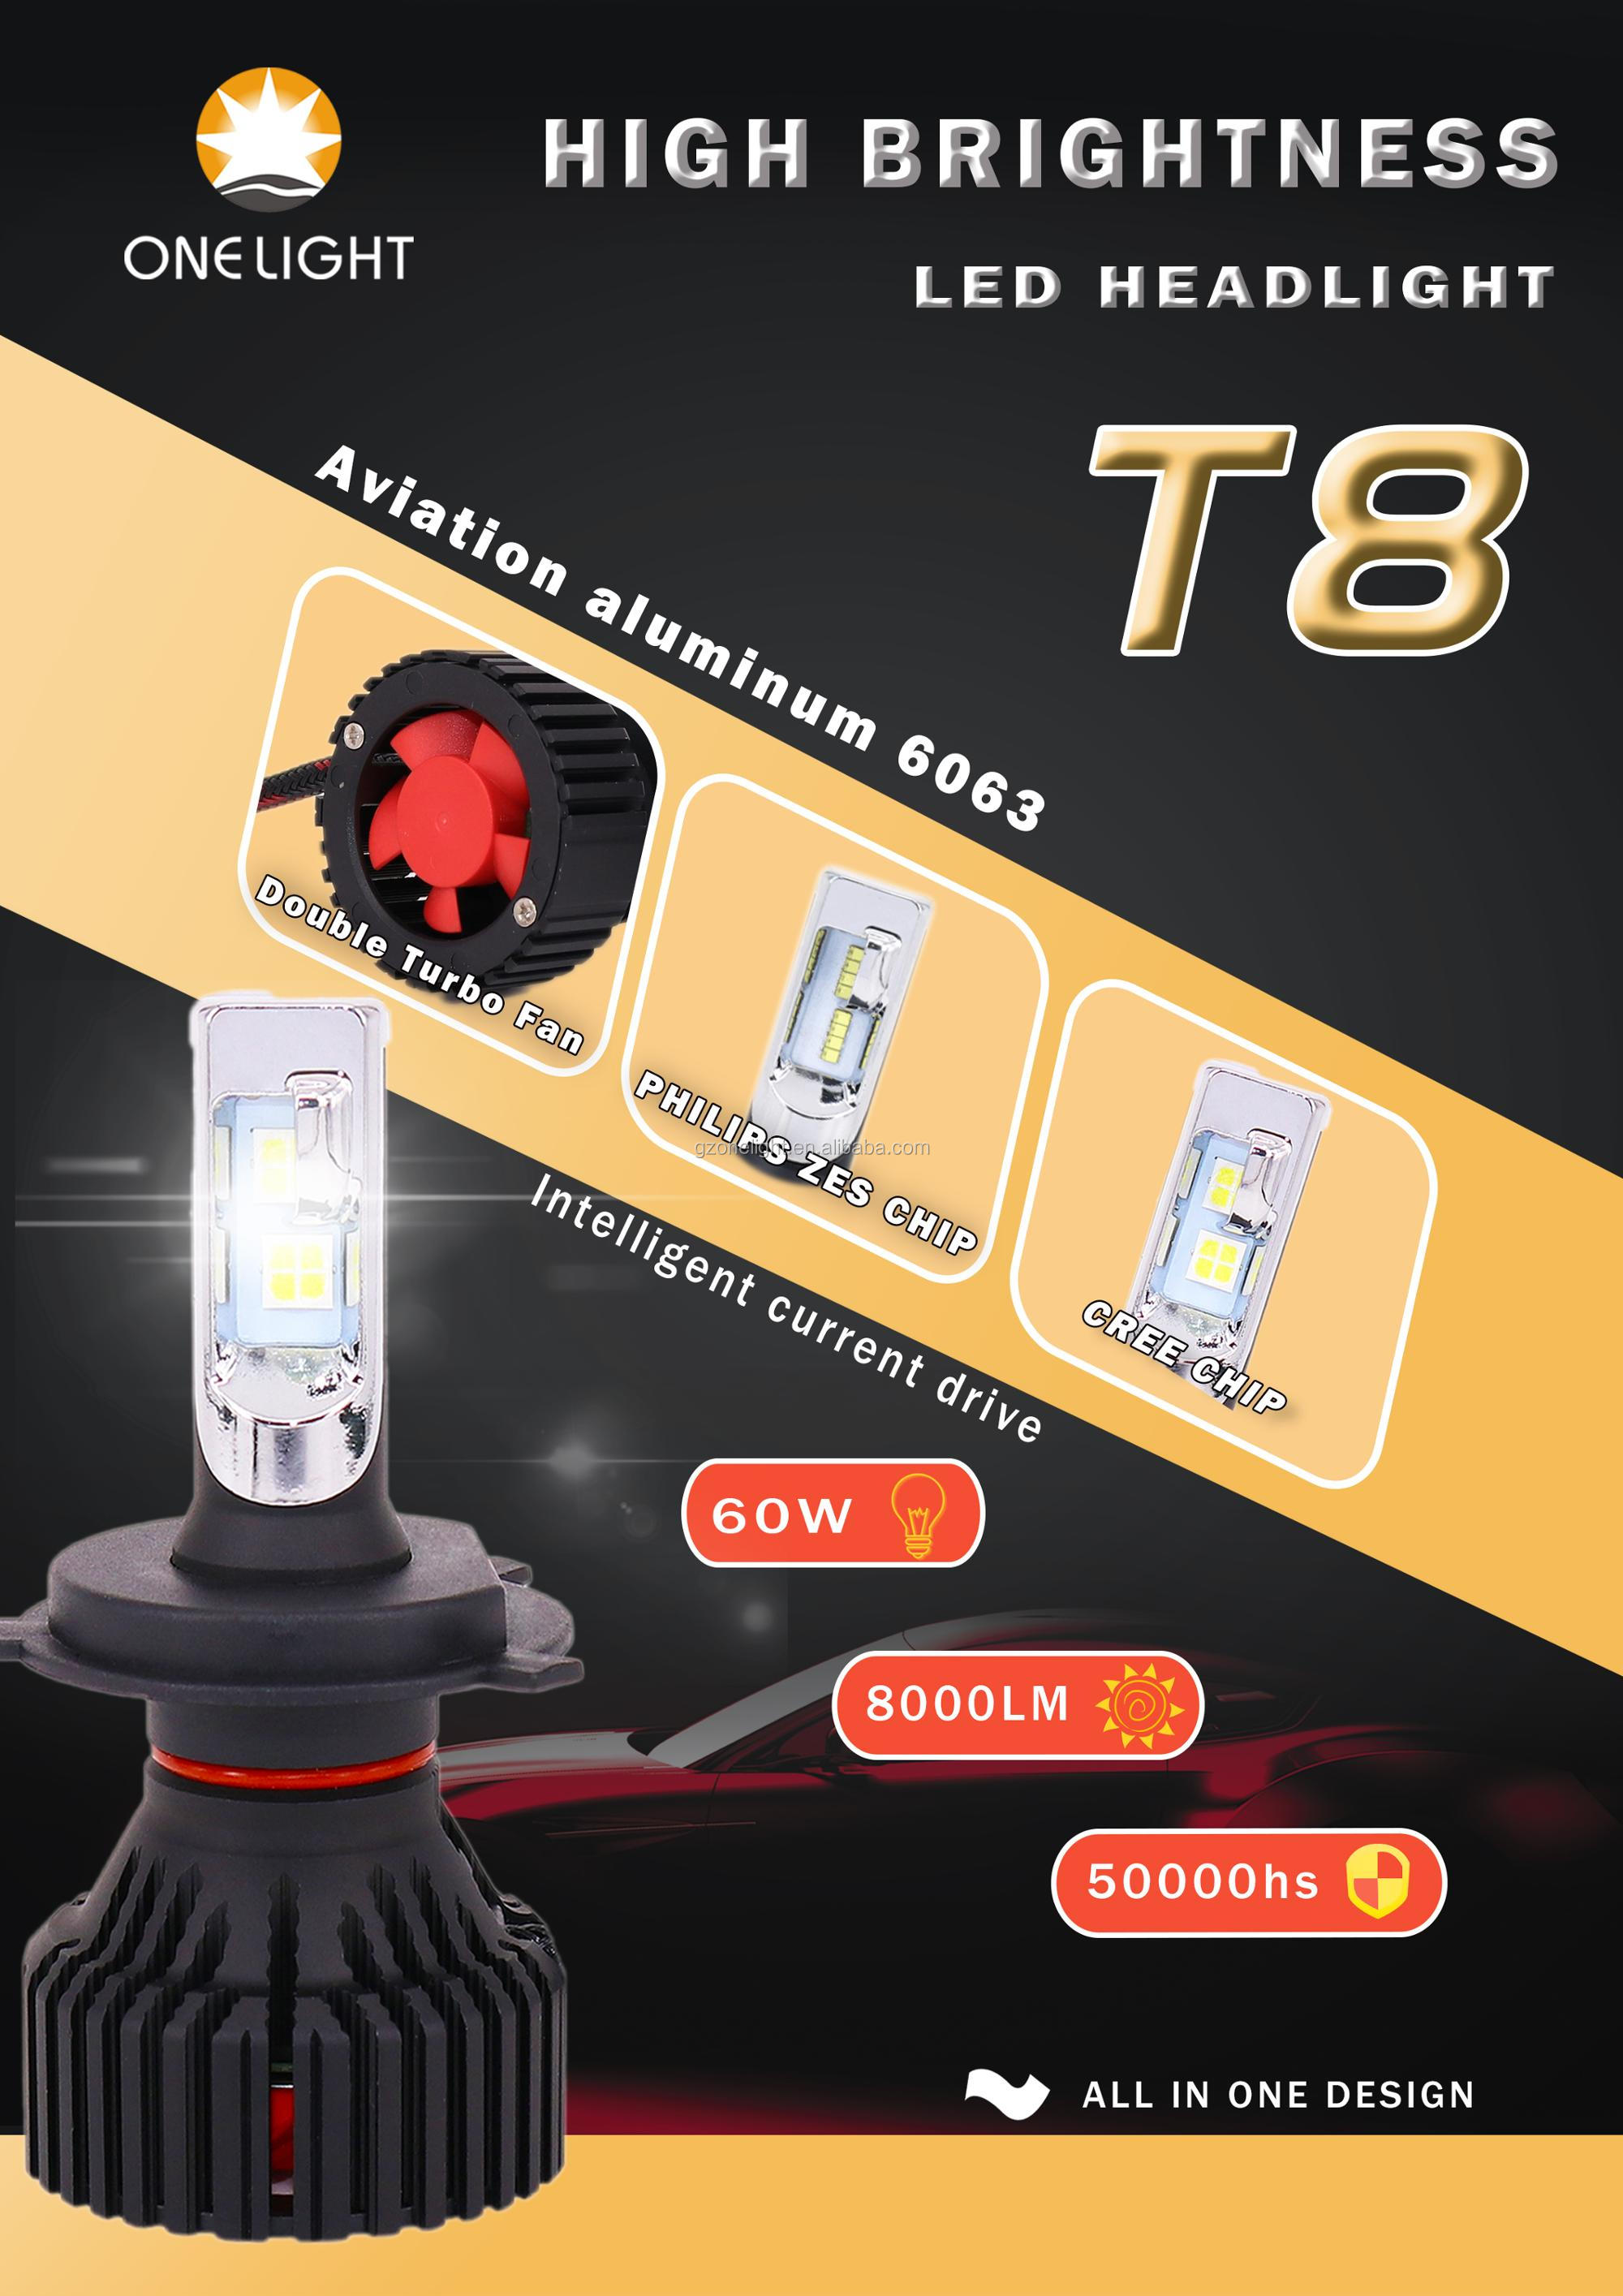 Waterproof T5 Plus H7 Led Headlight Bulbs T5+ led car lights headlight